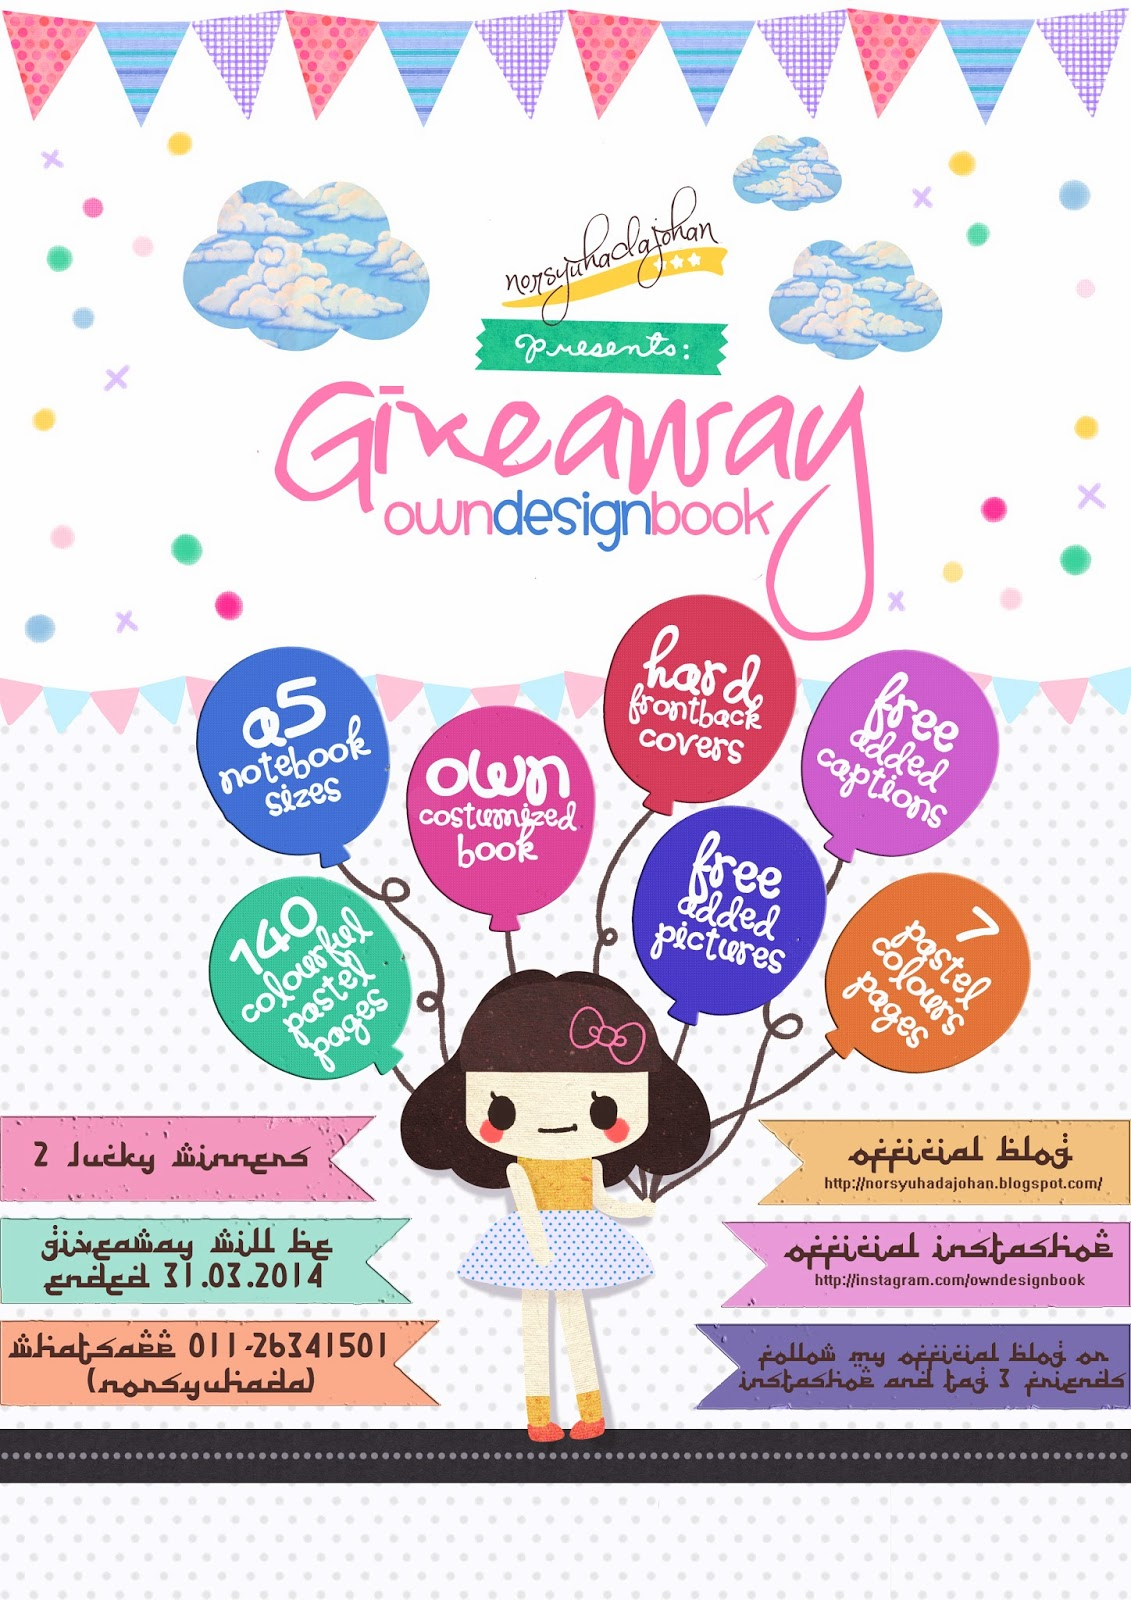 http://norsyuhadajohan.blogspot.com/2014/03/giveaway-owndesignbook-by.html